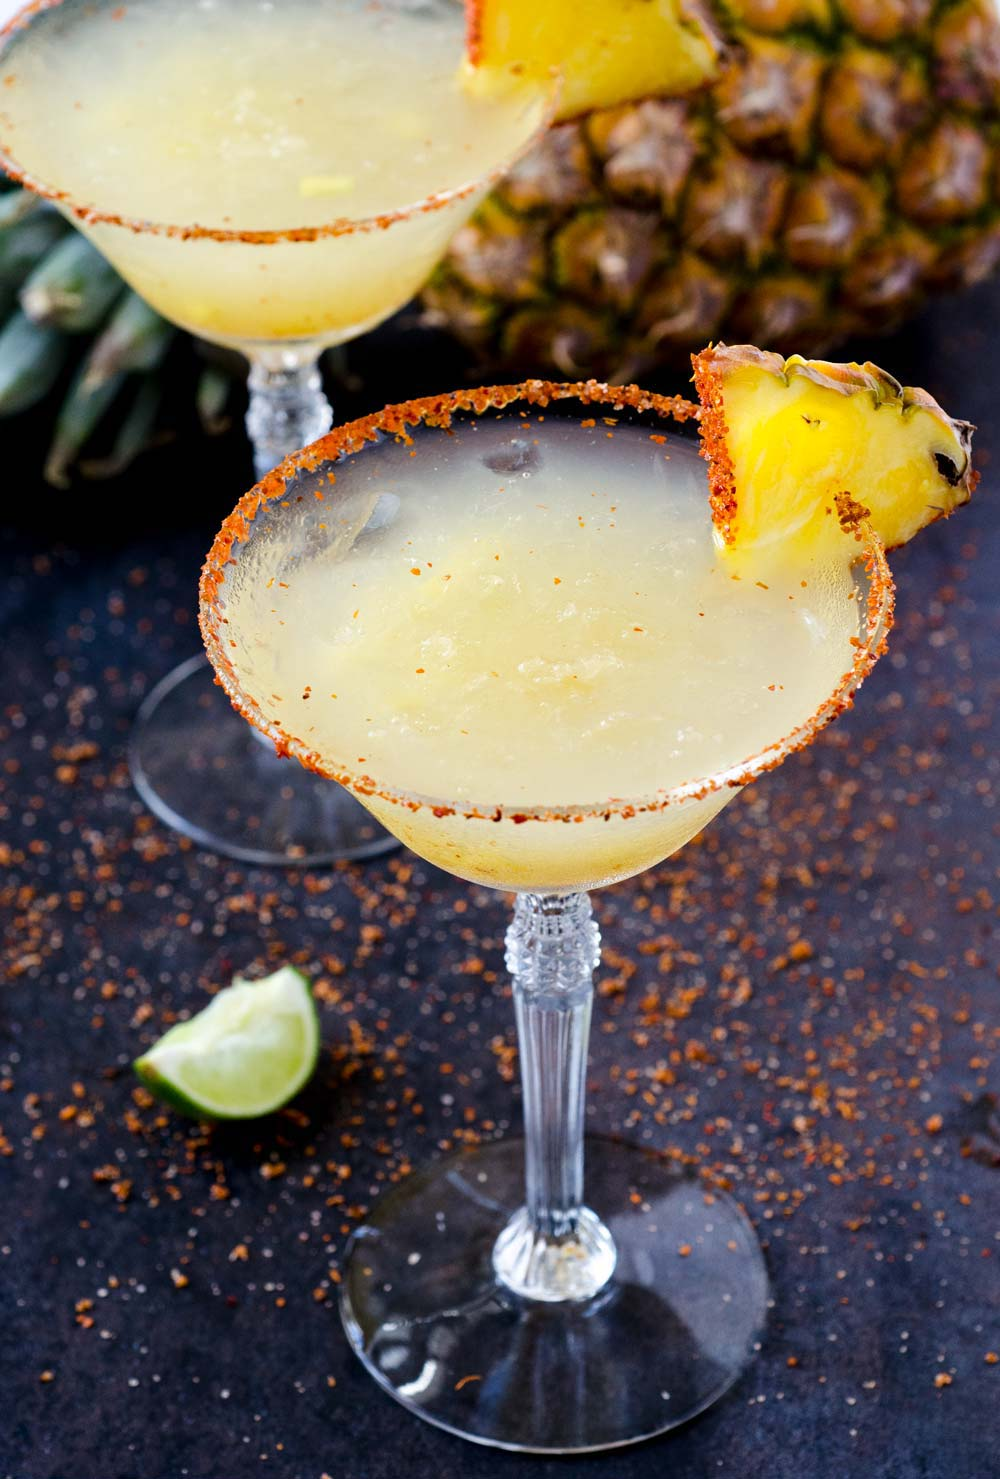 This pineapple chile margarita on the rocks is refreshing, slightly sweet, tart, and a bit spicy. It's hard to have just one!